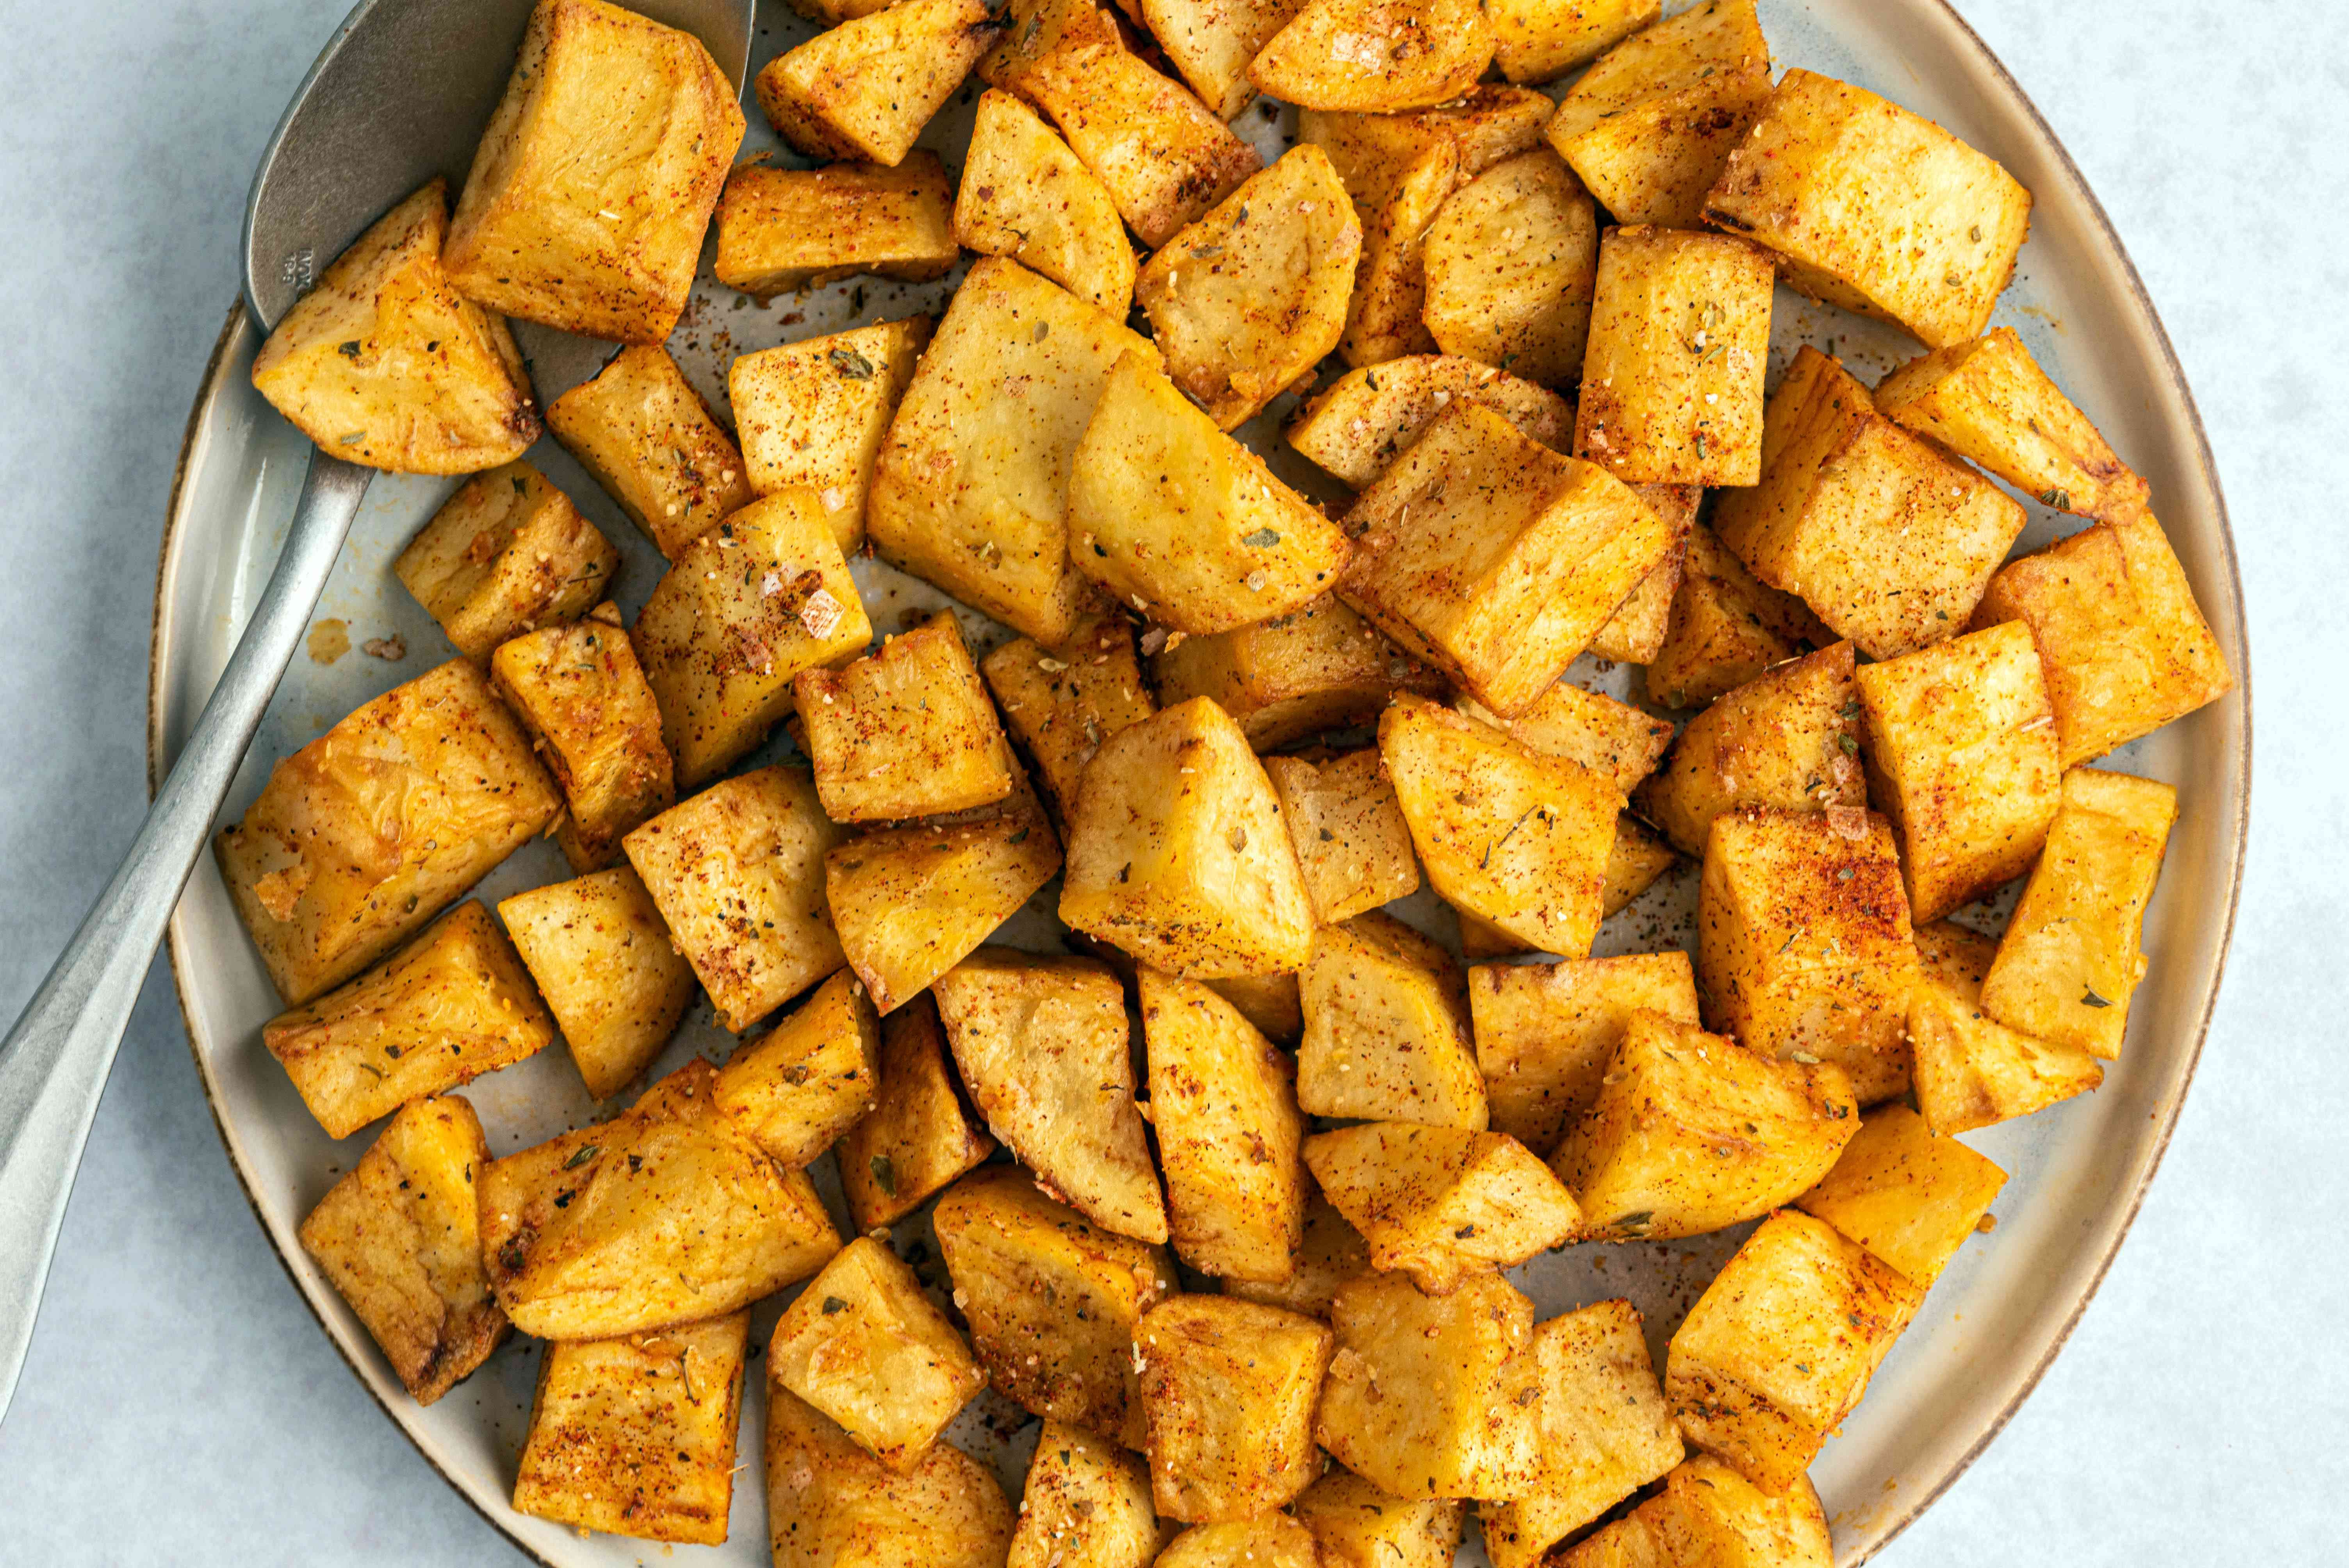 Moroccan deep-fried potatoes on a plate